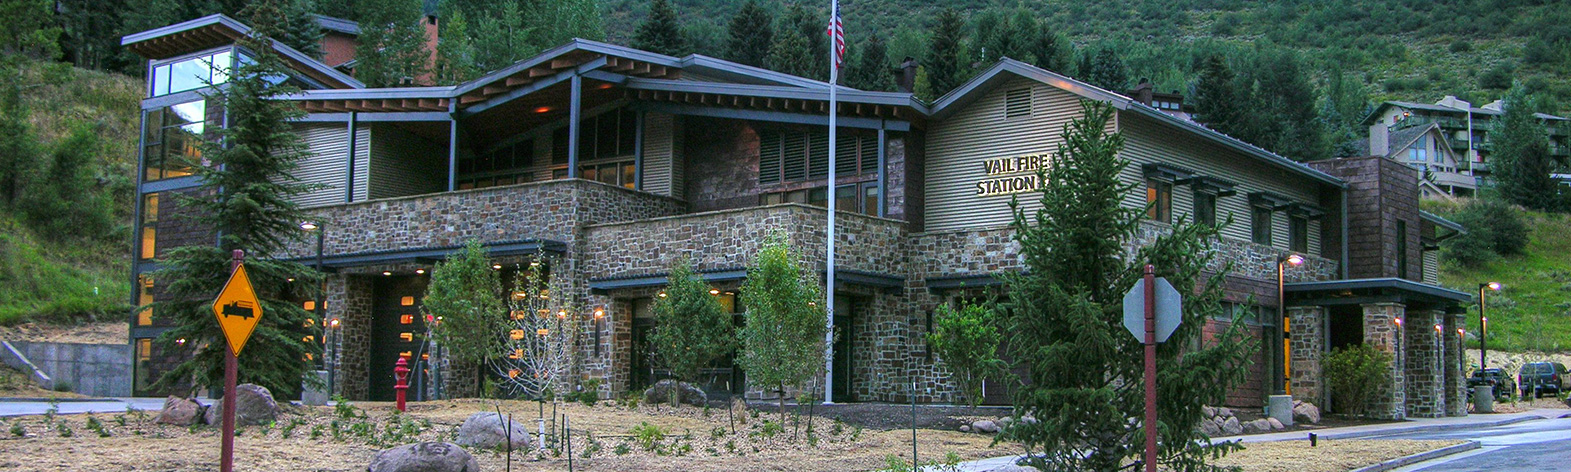 West Vail Fire Station #3